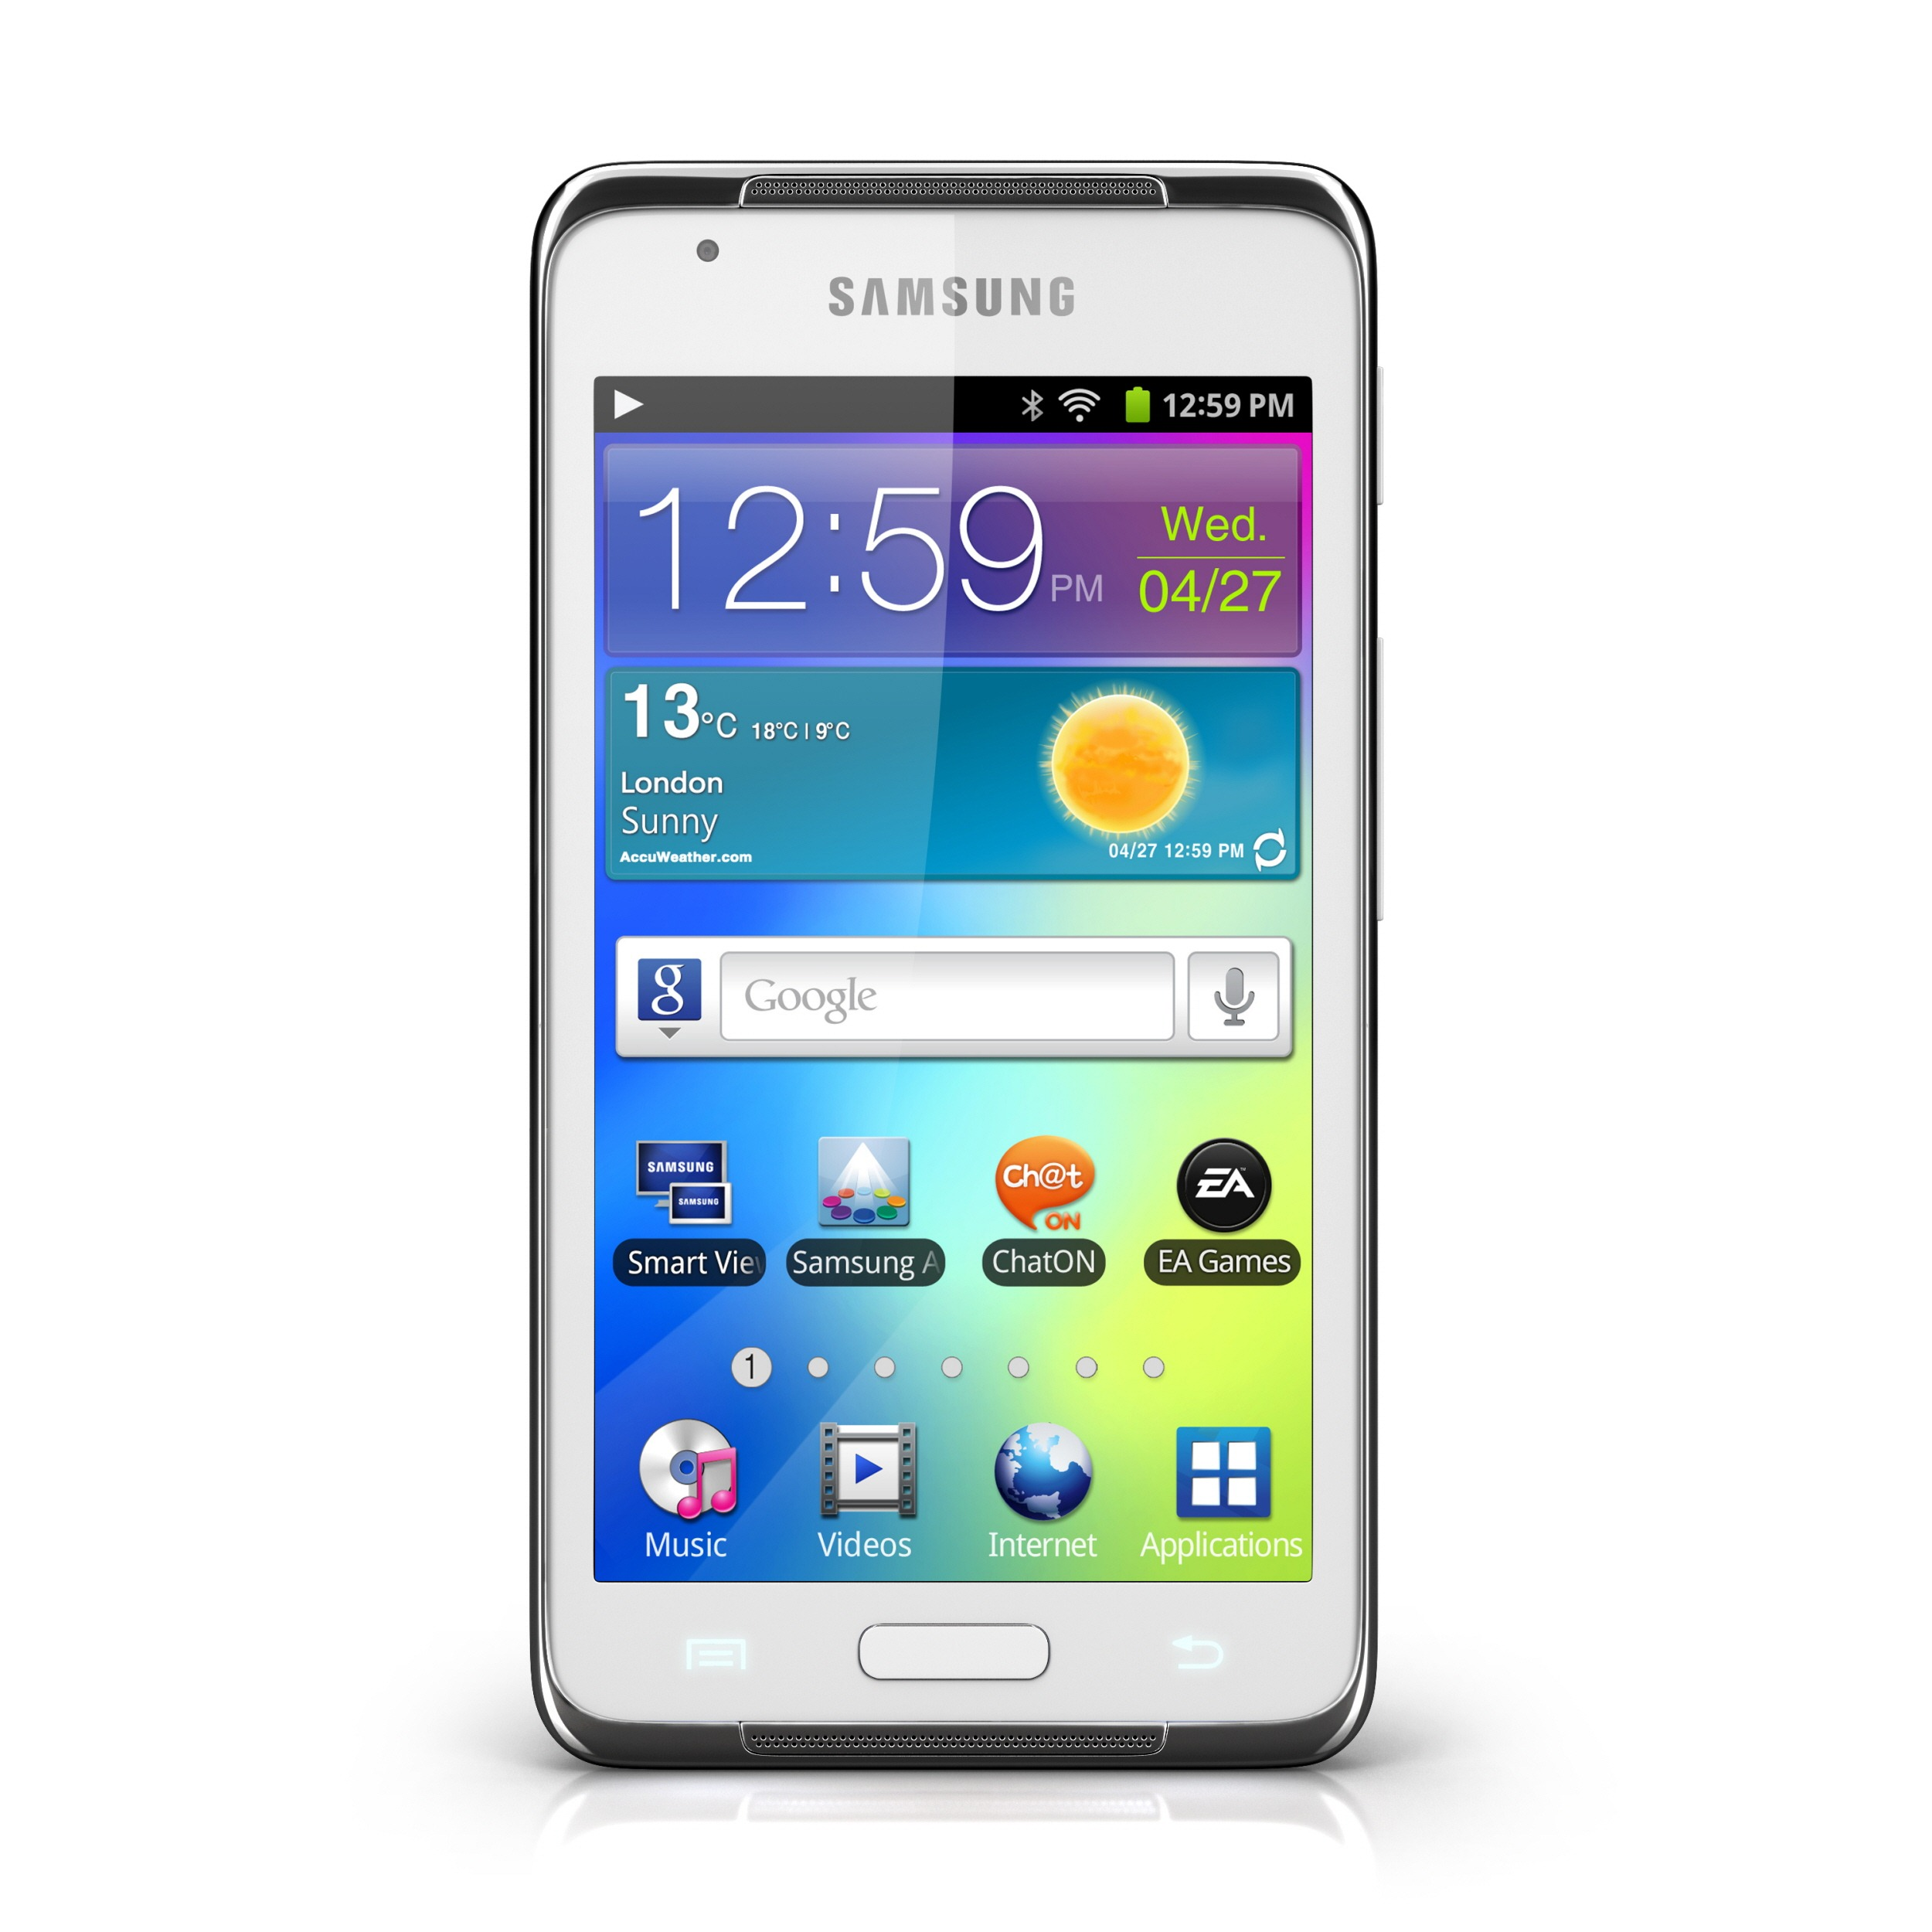 MWC 2012 Samsung Announces Galaxy S WiFi 42 For The